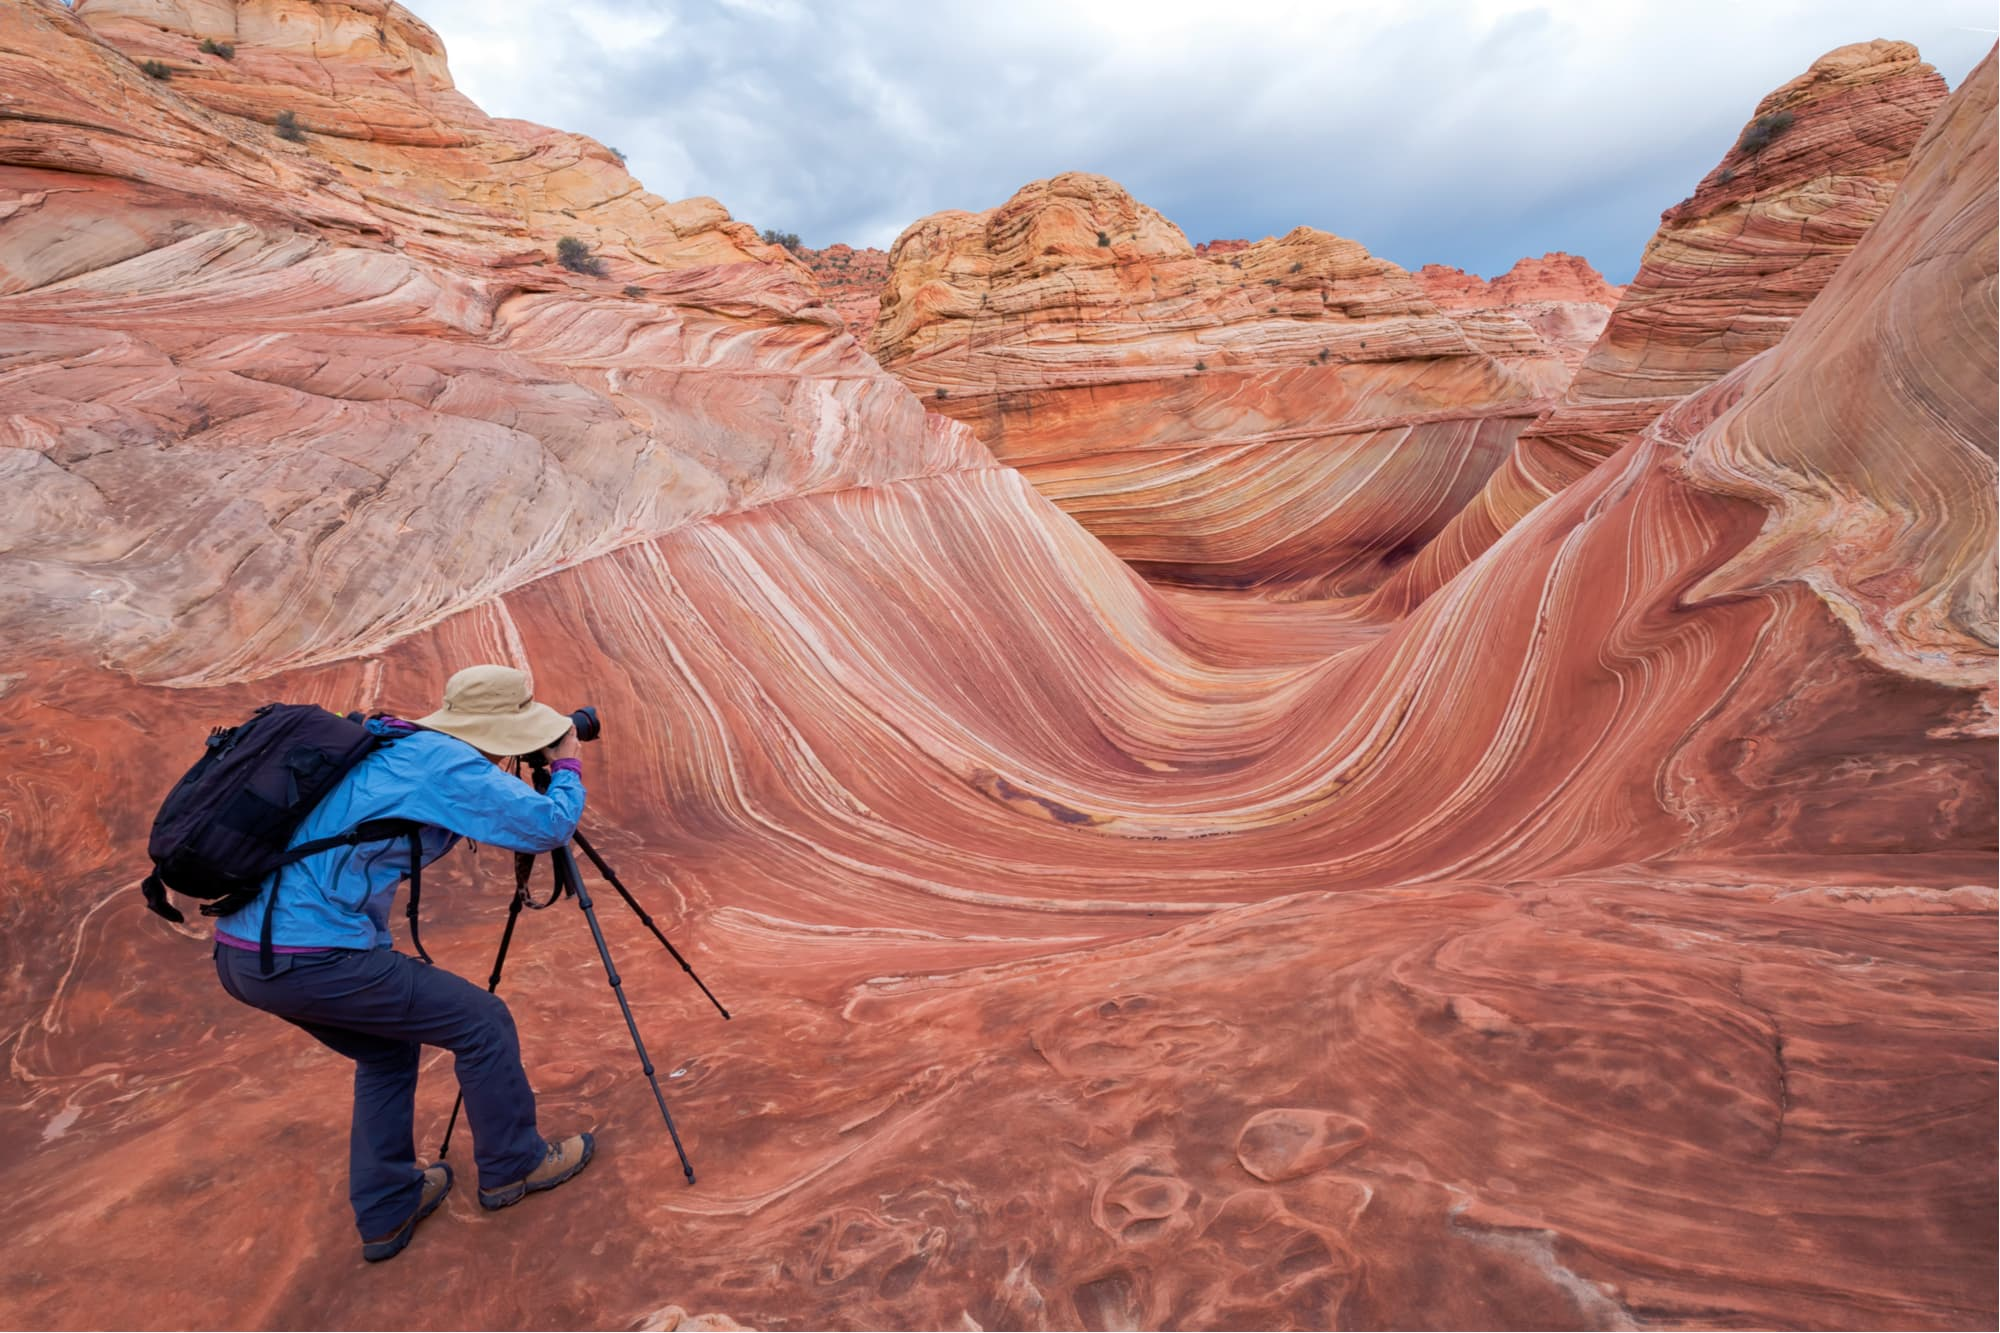 a man sets up a campera on a tripod to take a whoto of the wave rock formation in utah